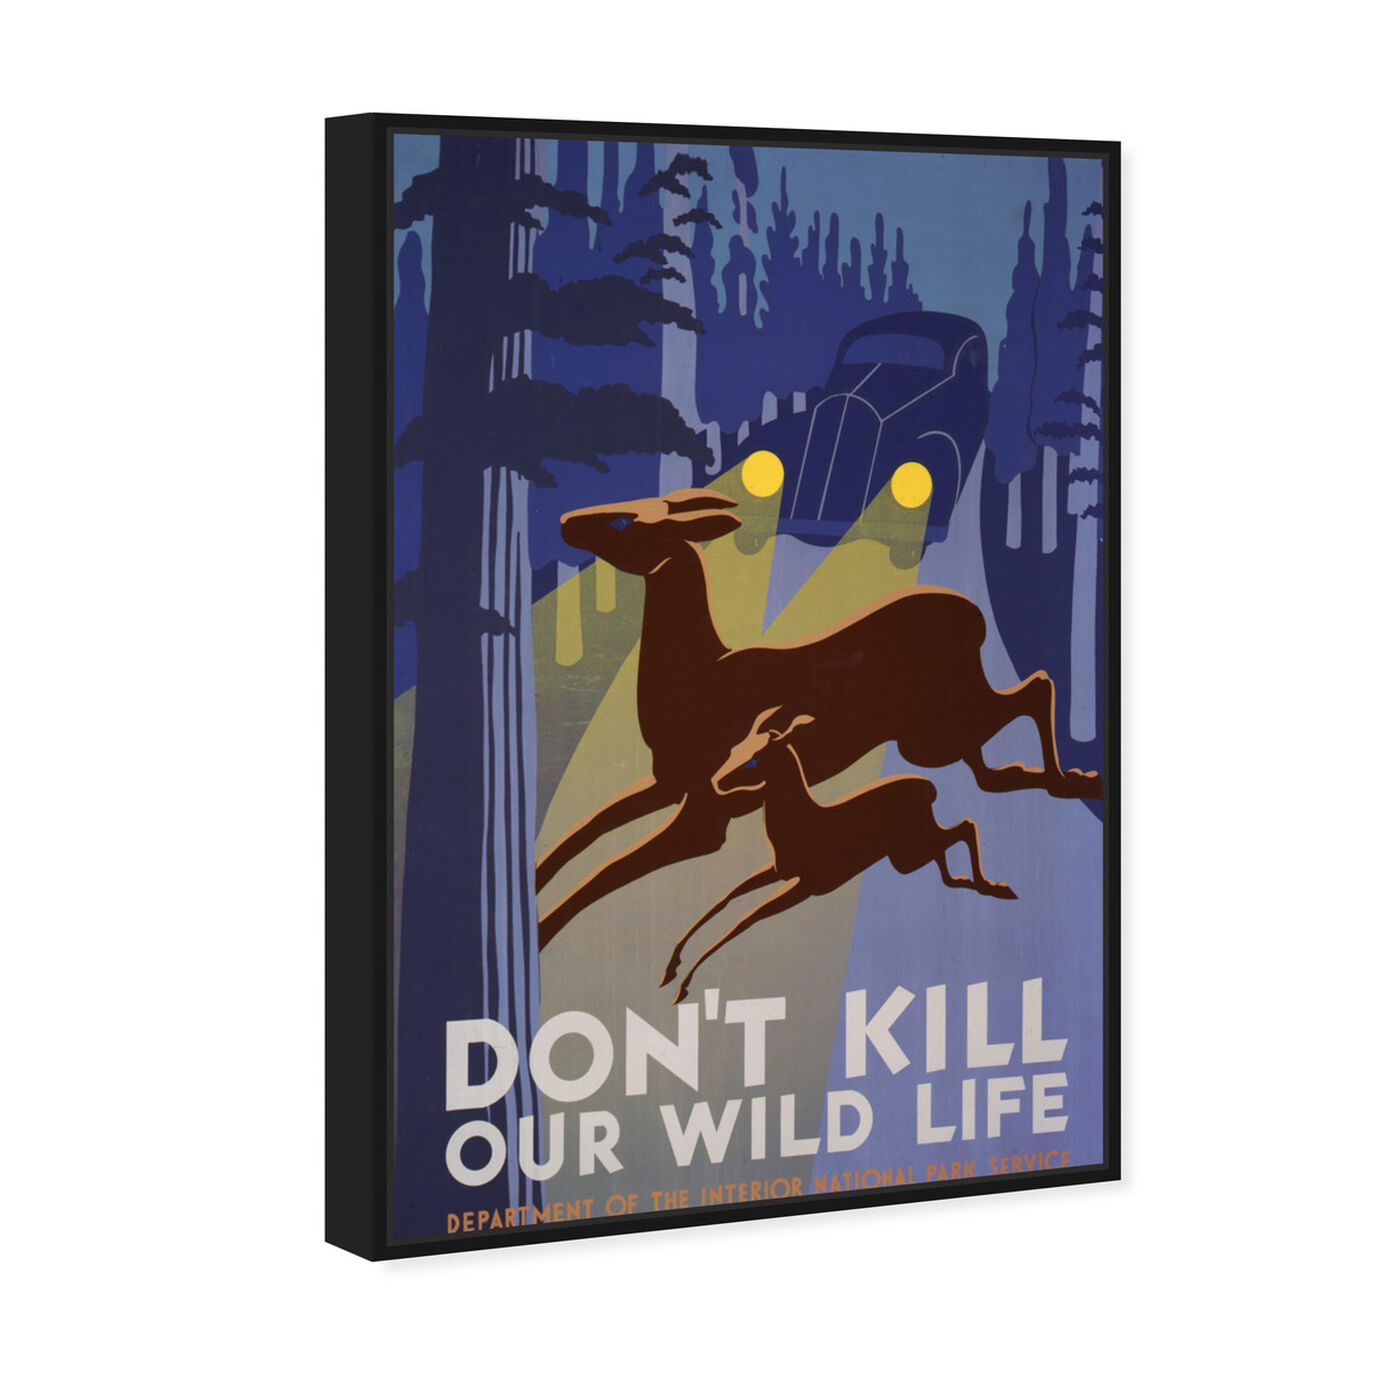 Angled view of Don't Kill Our Wild Life featuring advertising and posters art.